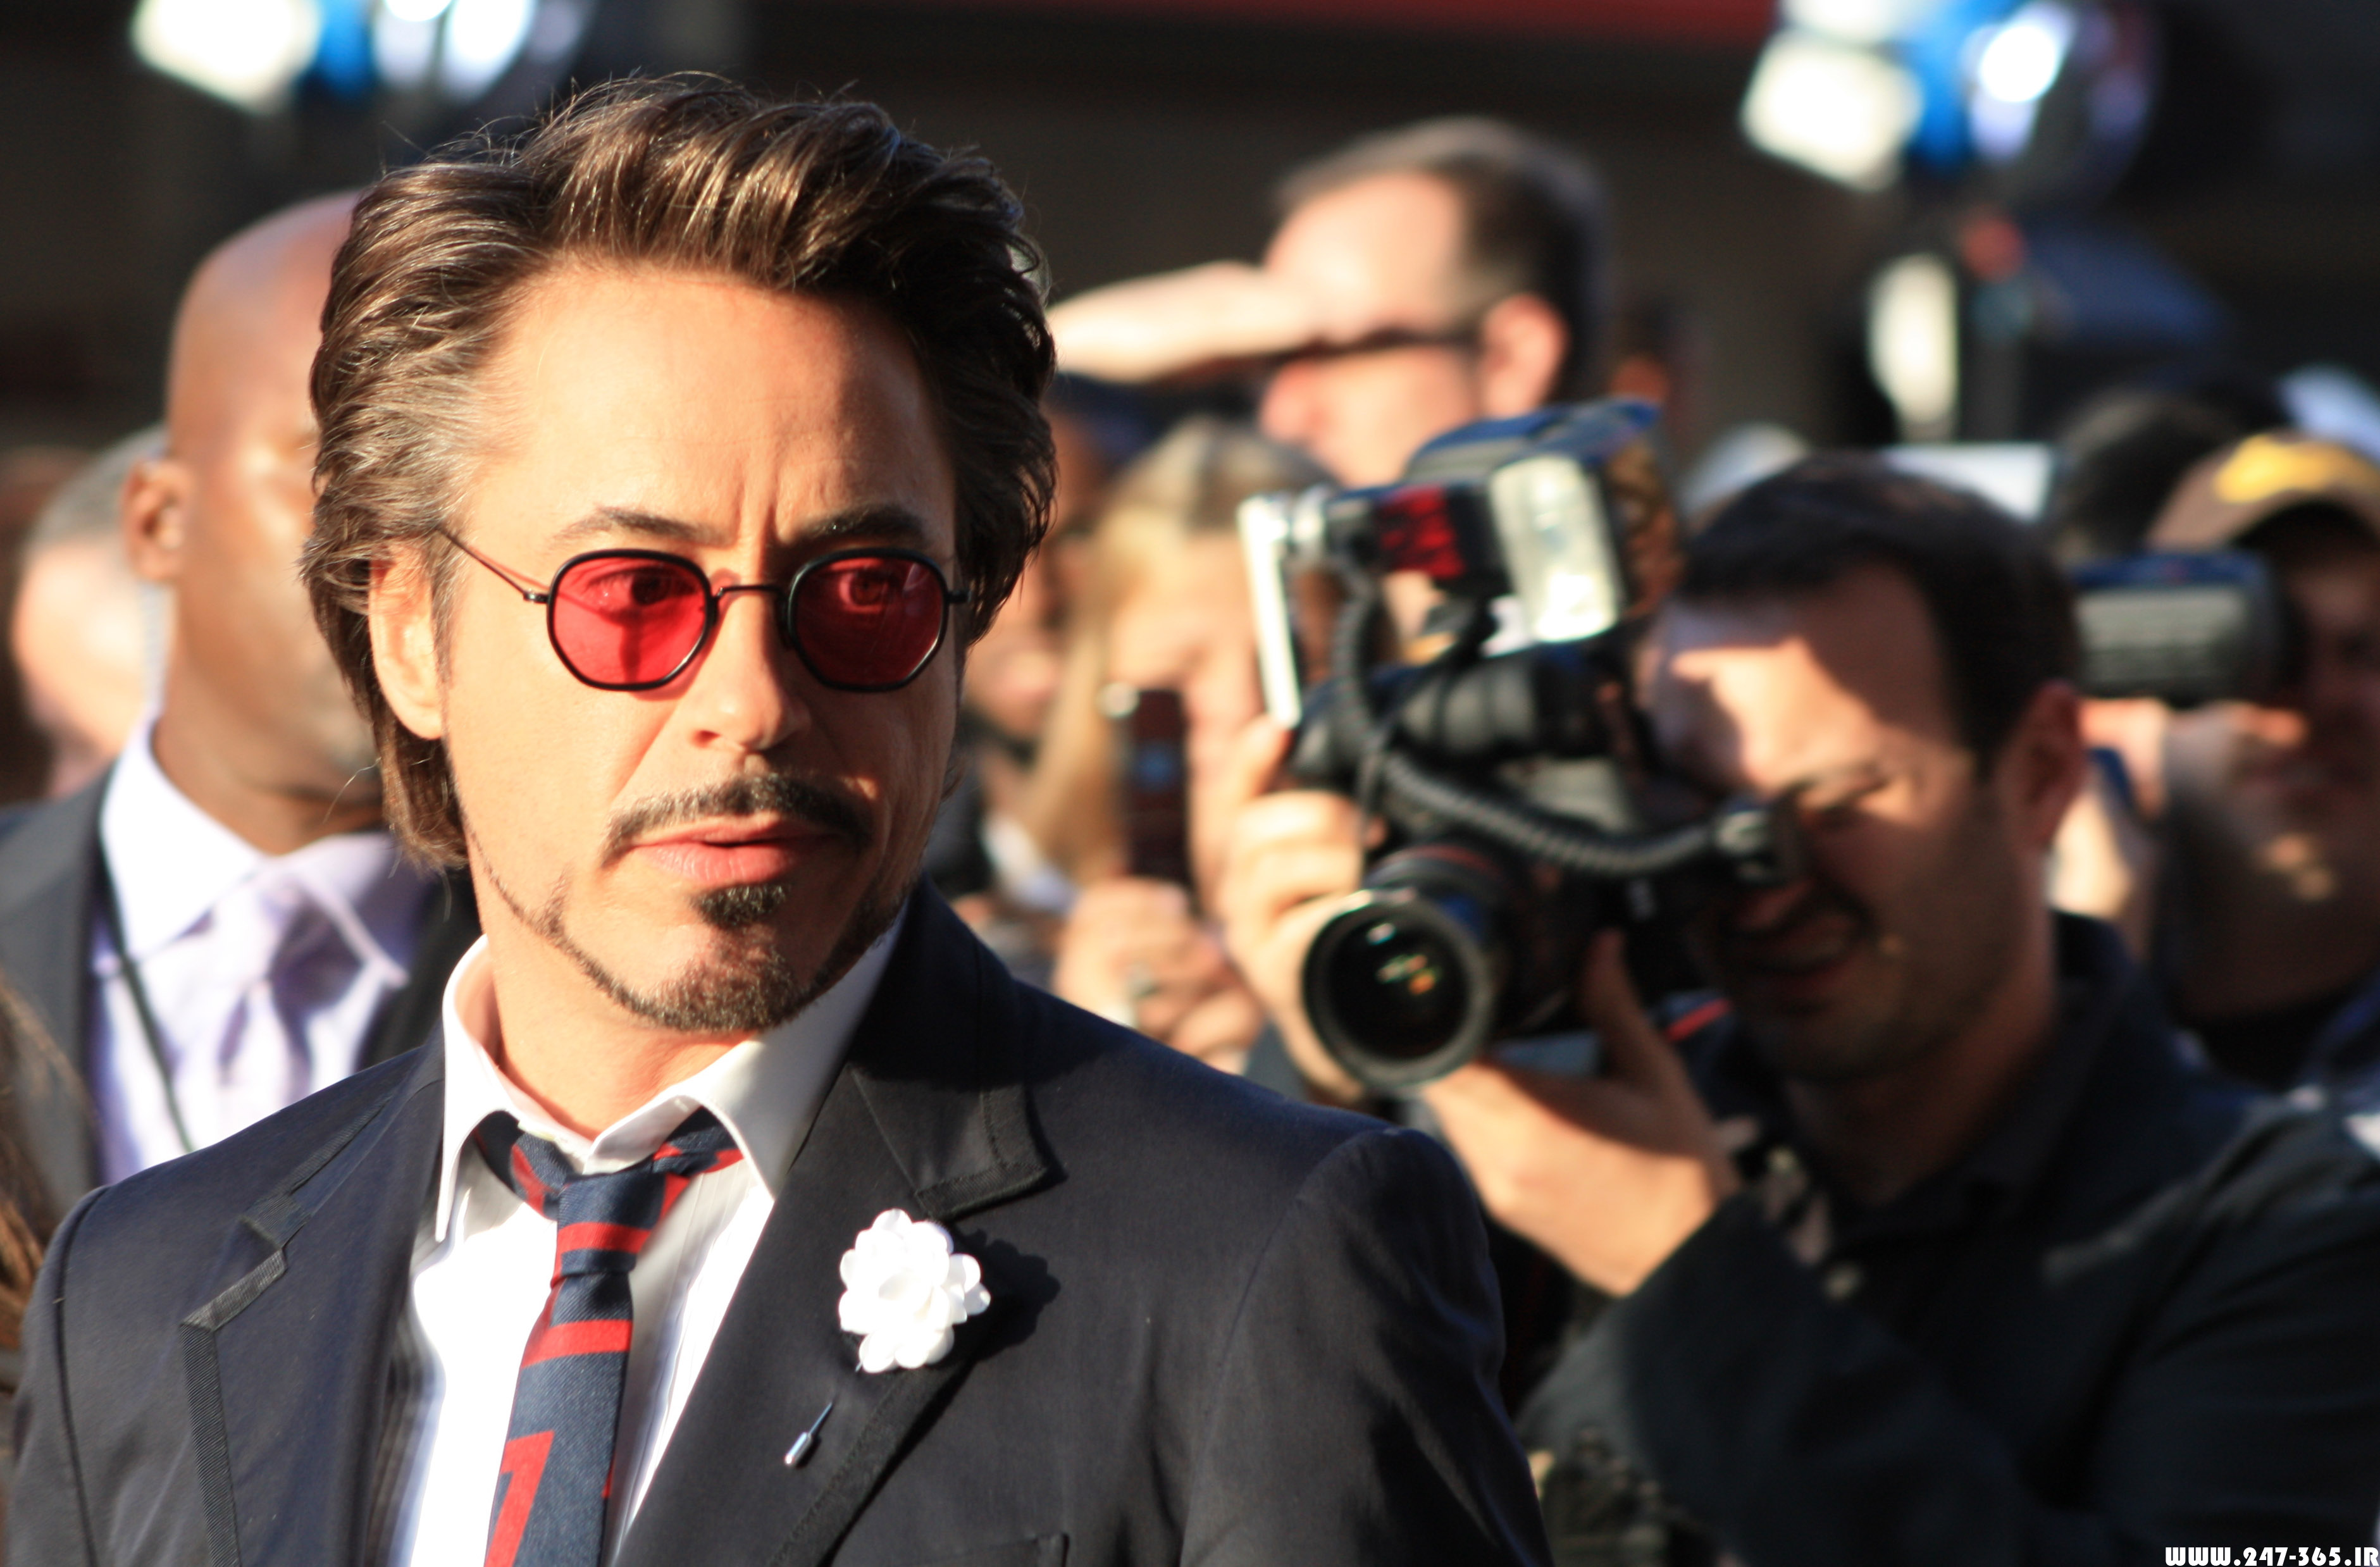 http://dl.247-365.ir/pic/celebrity/robert_downey_jr_2/Robert_Downey_Jr_2_13.jpg